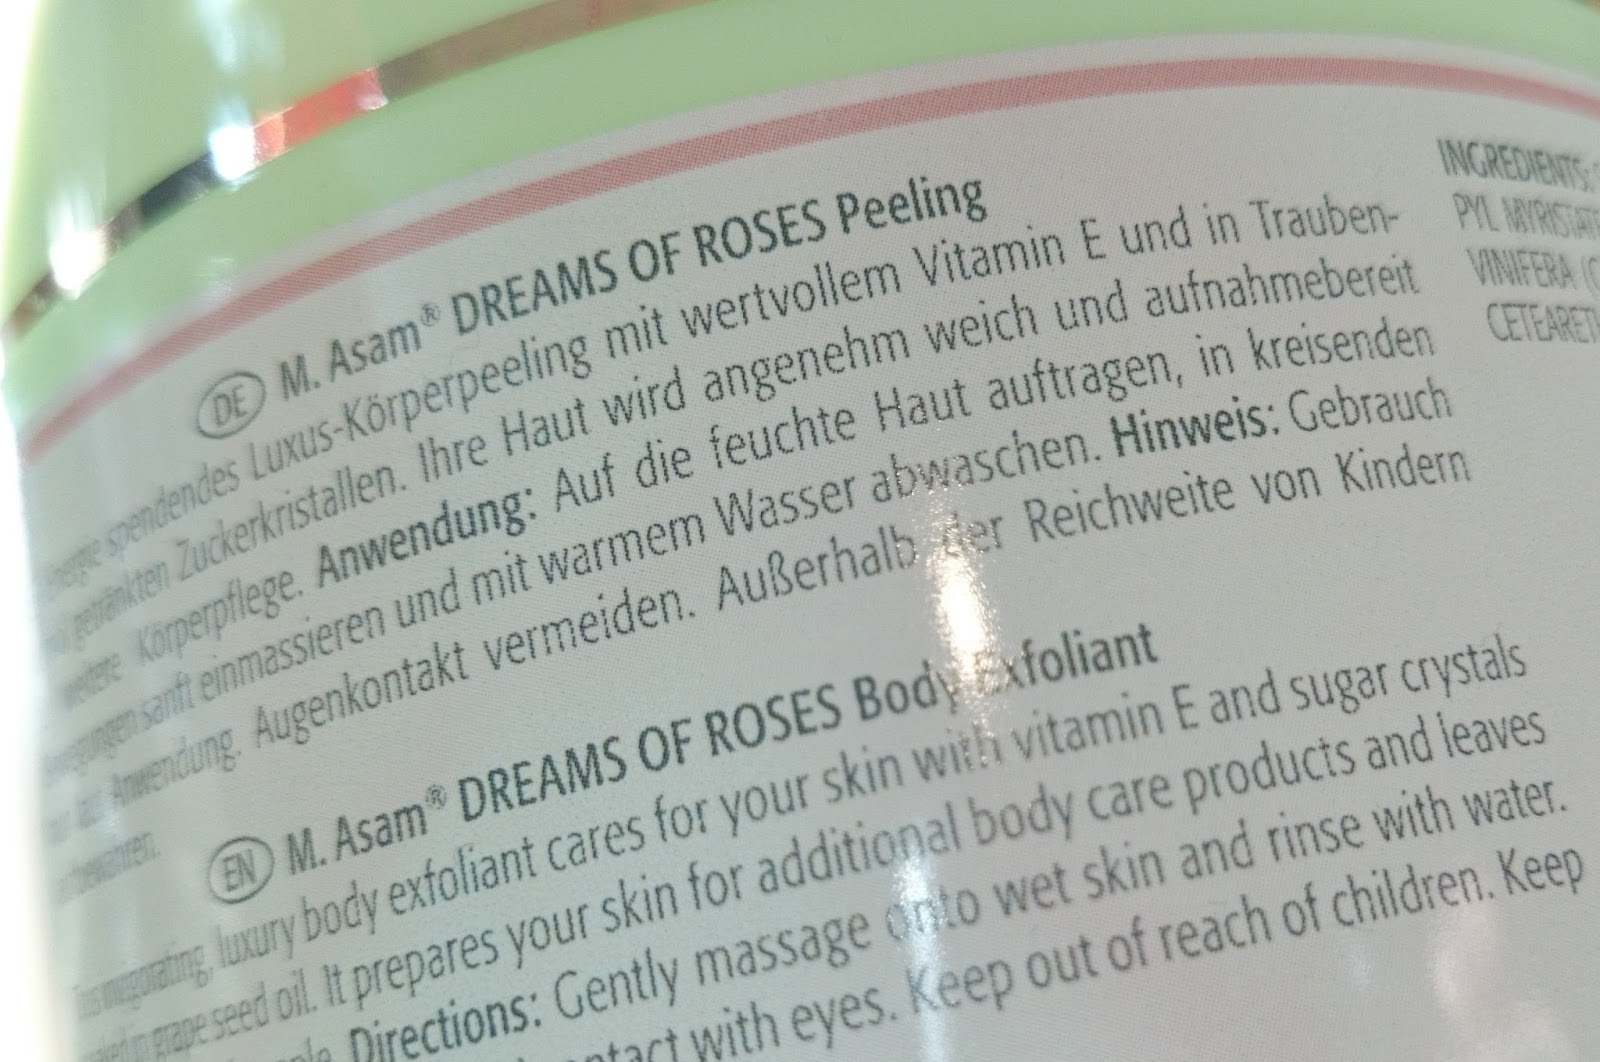 Produkttest M. Asam Dreams of Roses Peeling